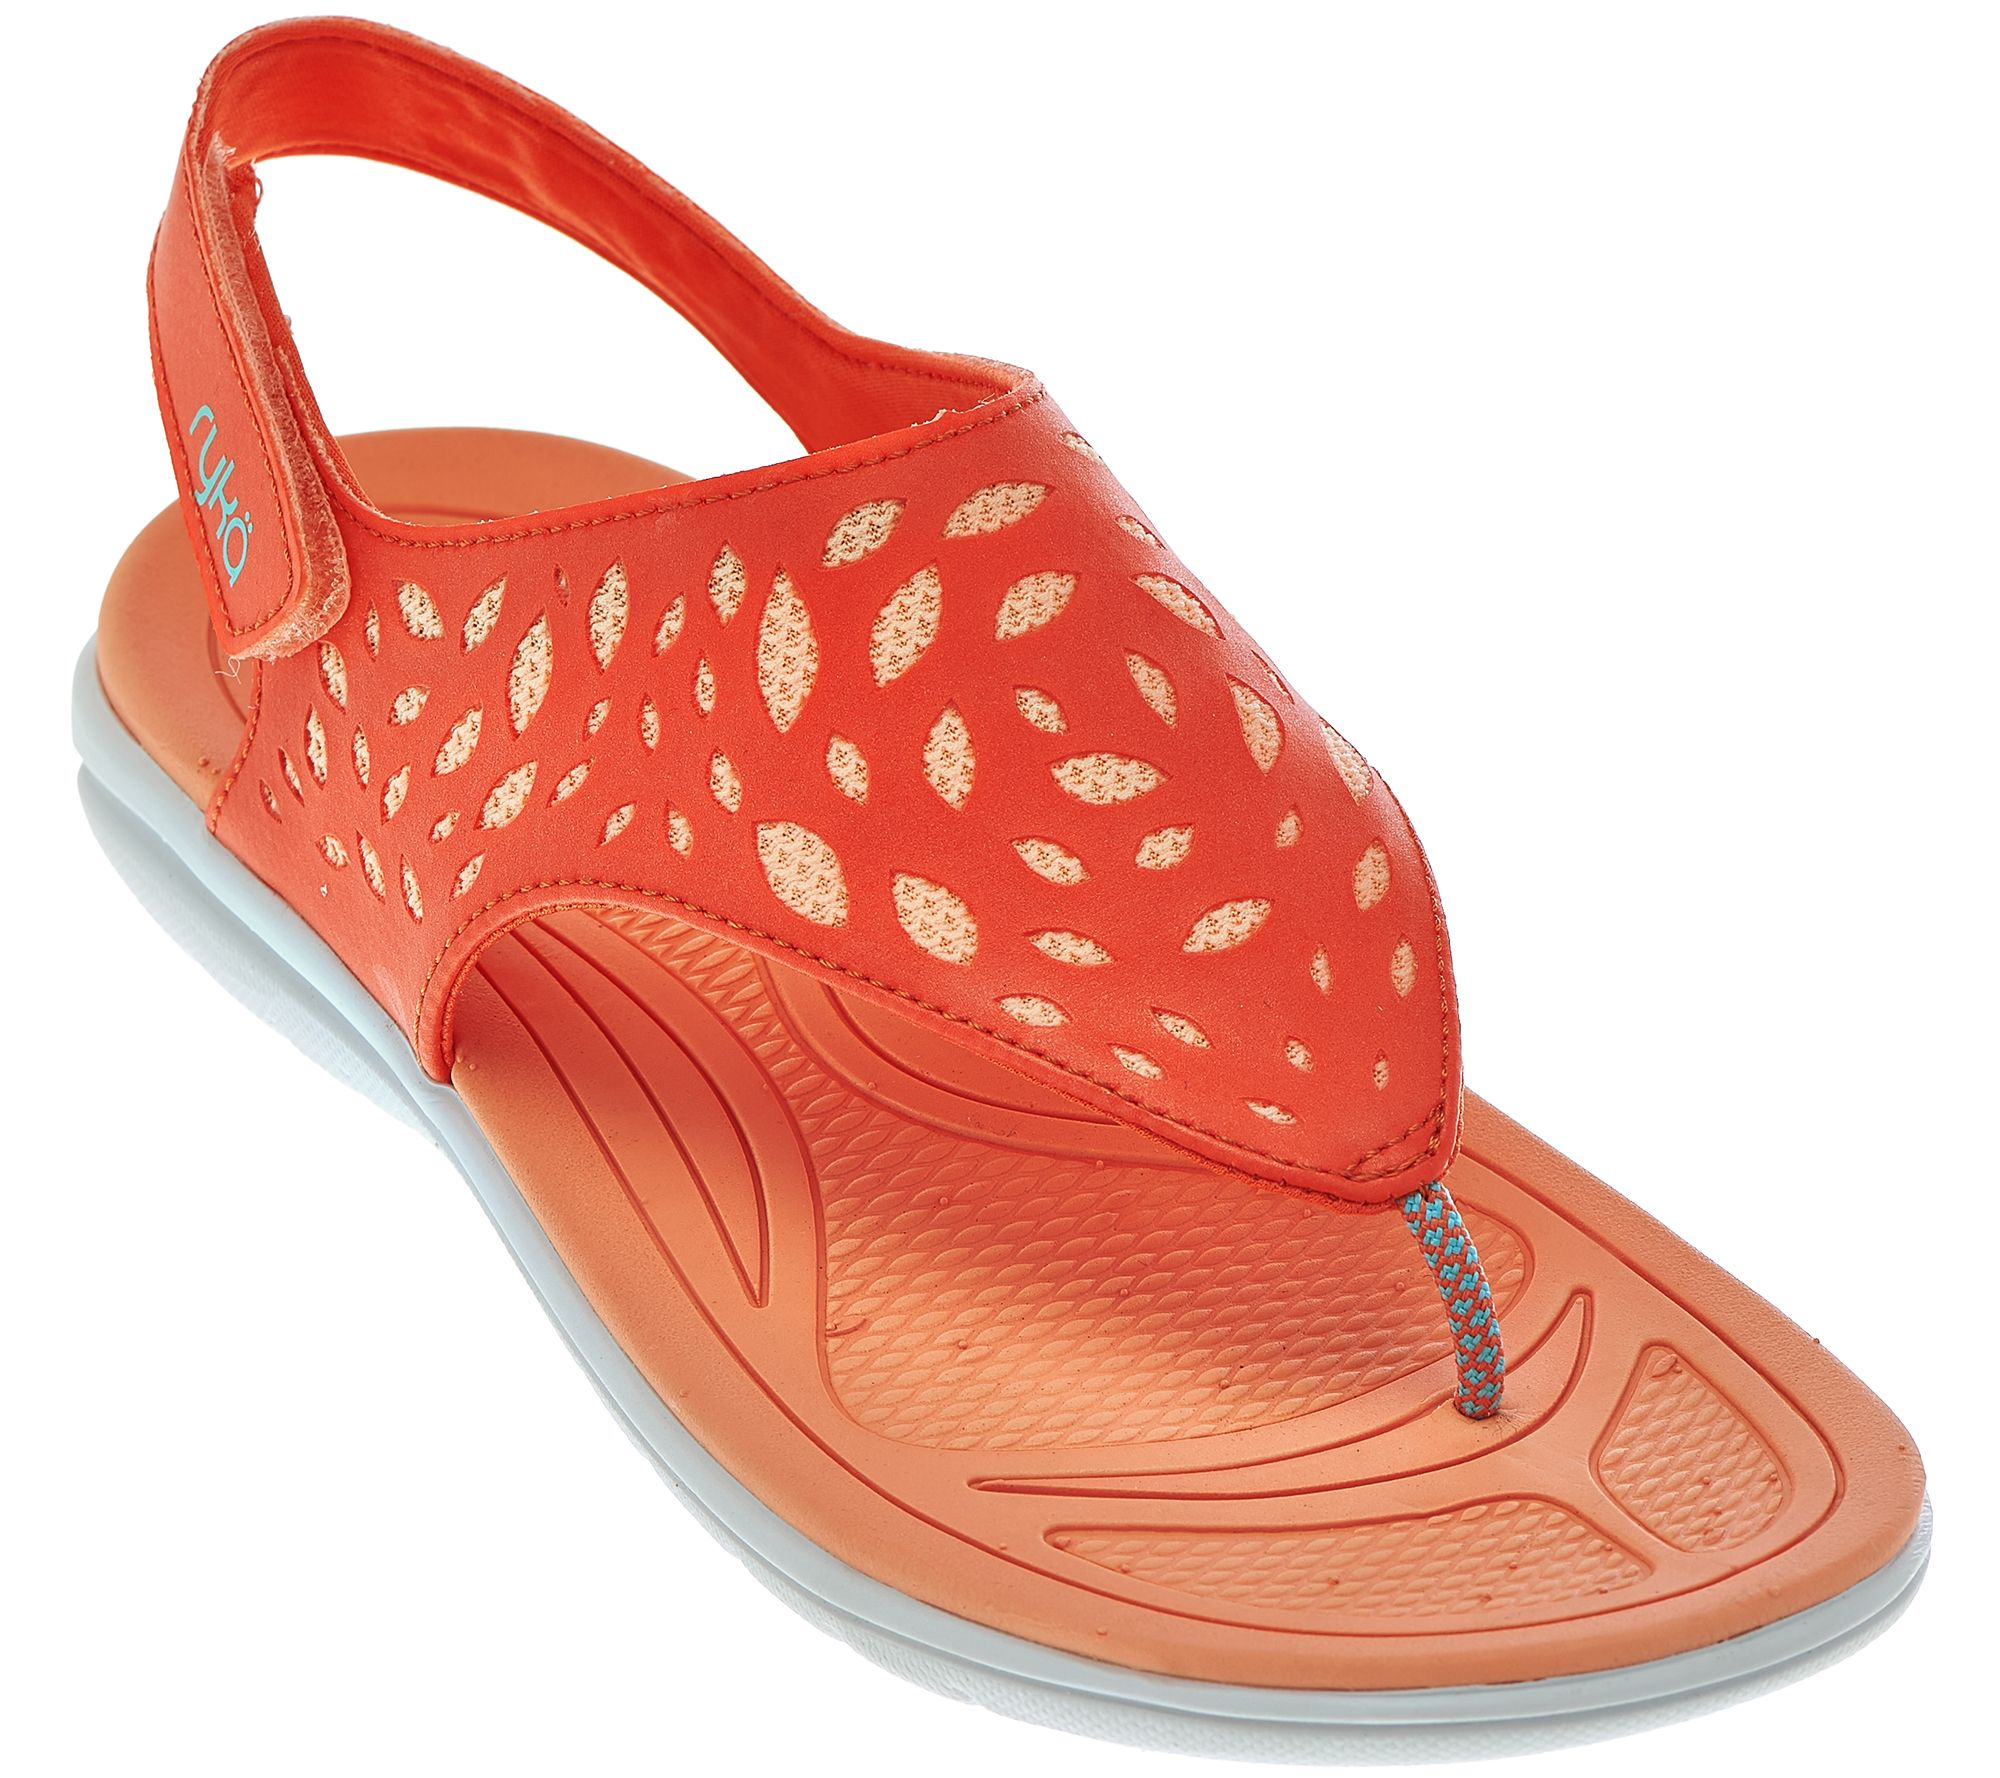 Ryka sandals shoes - Ryka Sandals Shoes 1